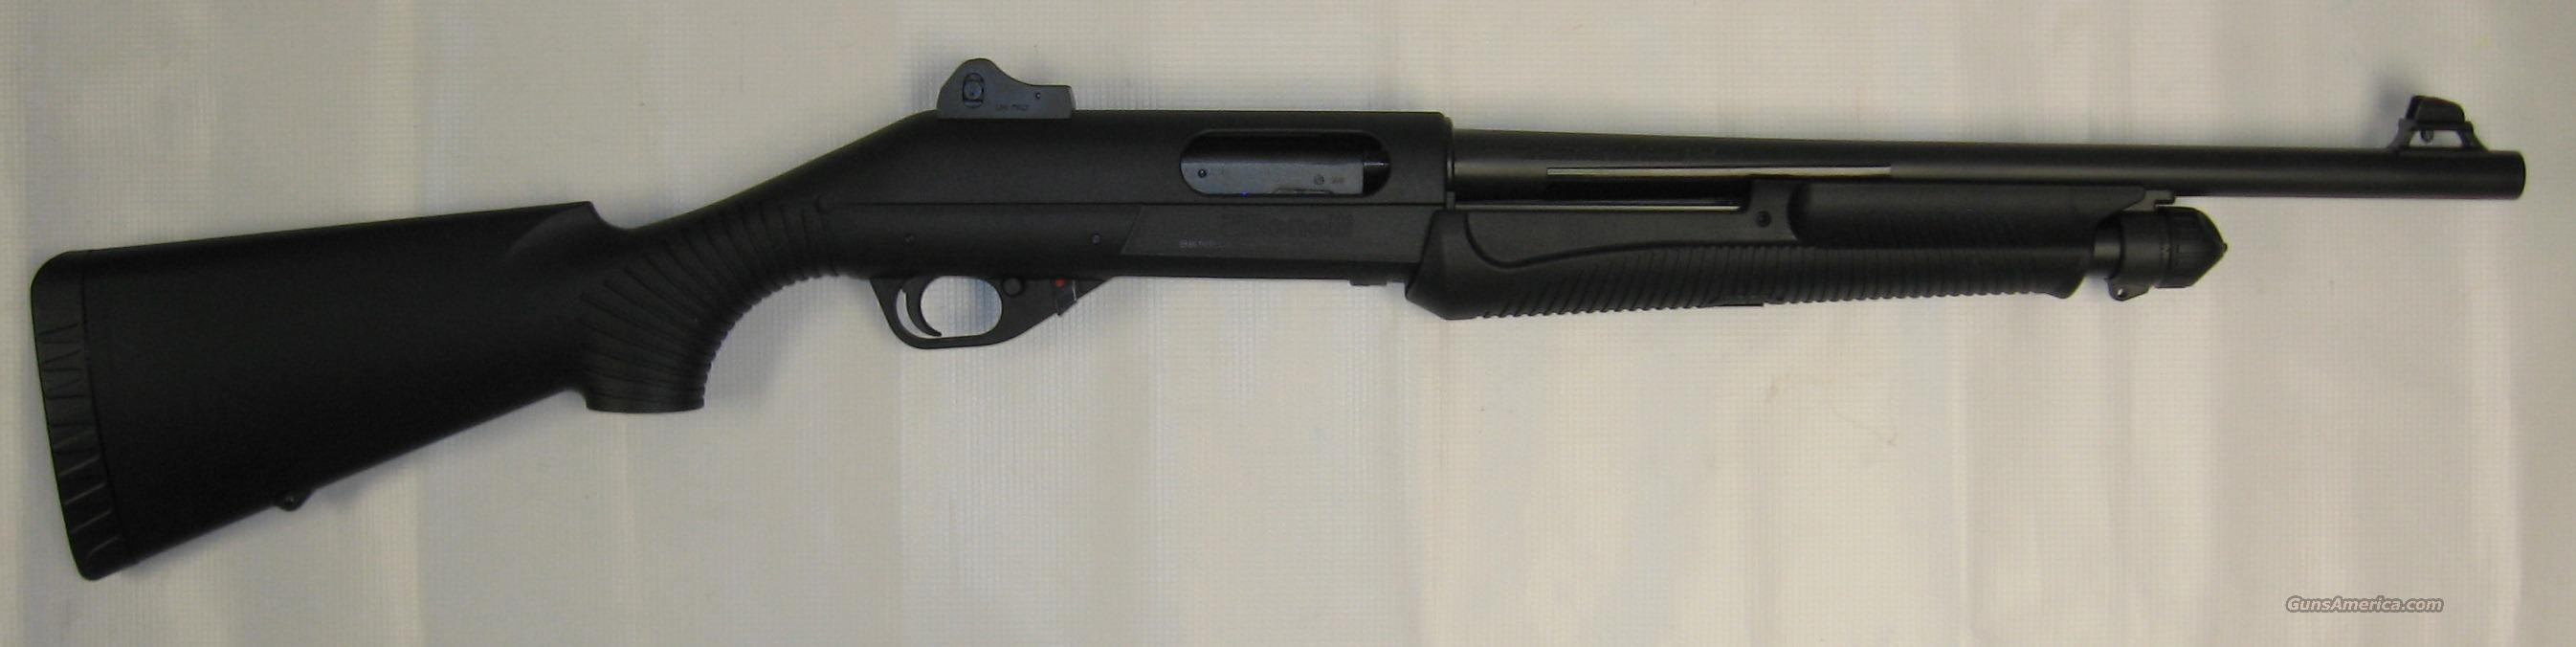 Benelli Nova Tactical  Guns > Shotguns > Benelli Shotguns > Tactical